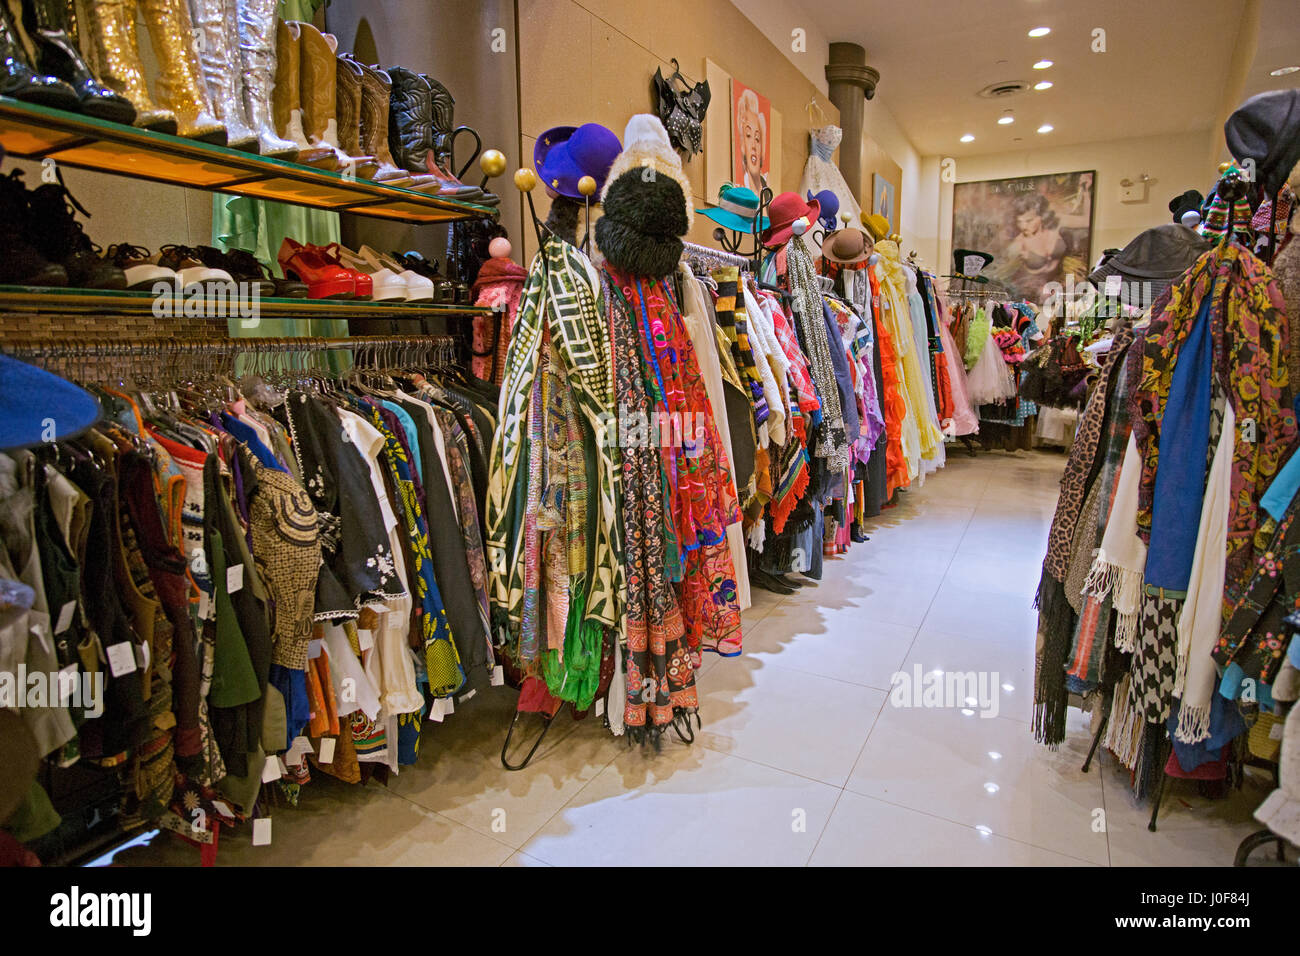 Reminiscence vintage clothing and knickknack store on Fifth Avenue in Greenwich Village, New York City - Stock Image